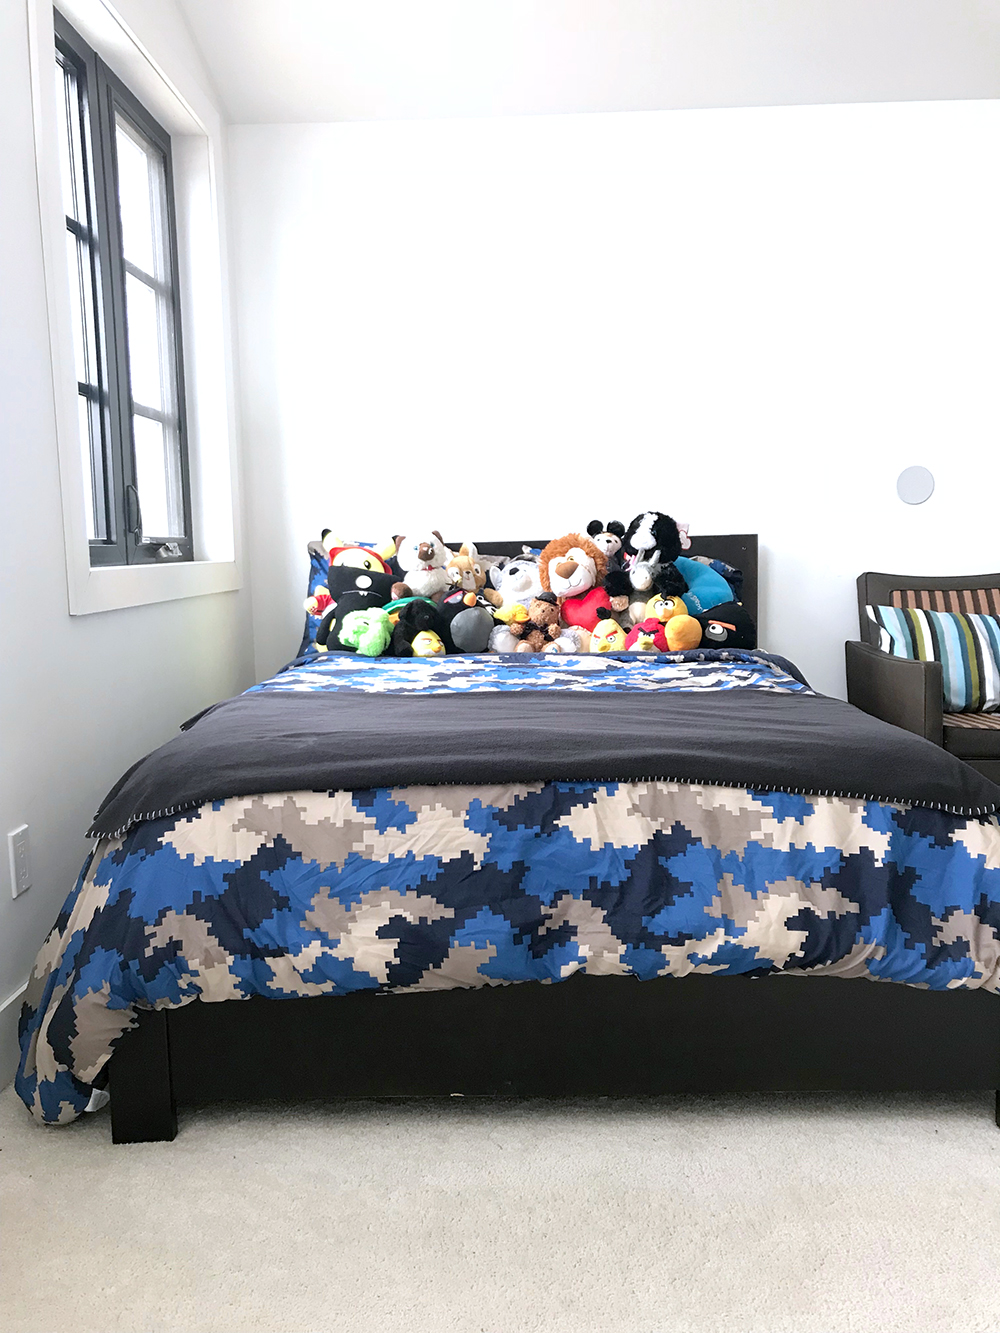 Boys bedroom before: a bed full of stuffed animals provides the only colour in the room